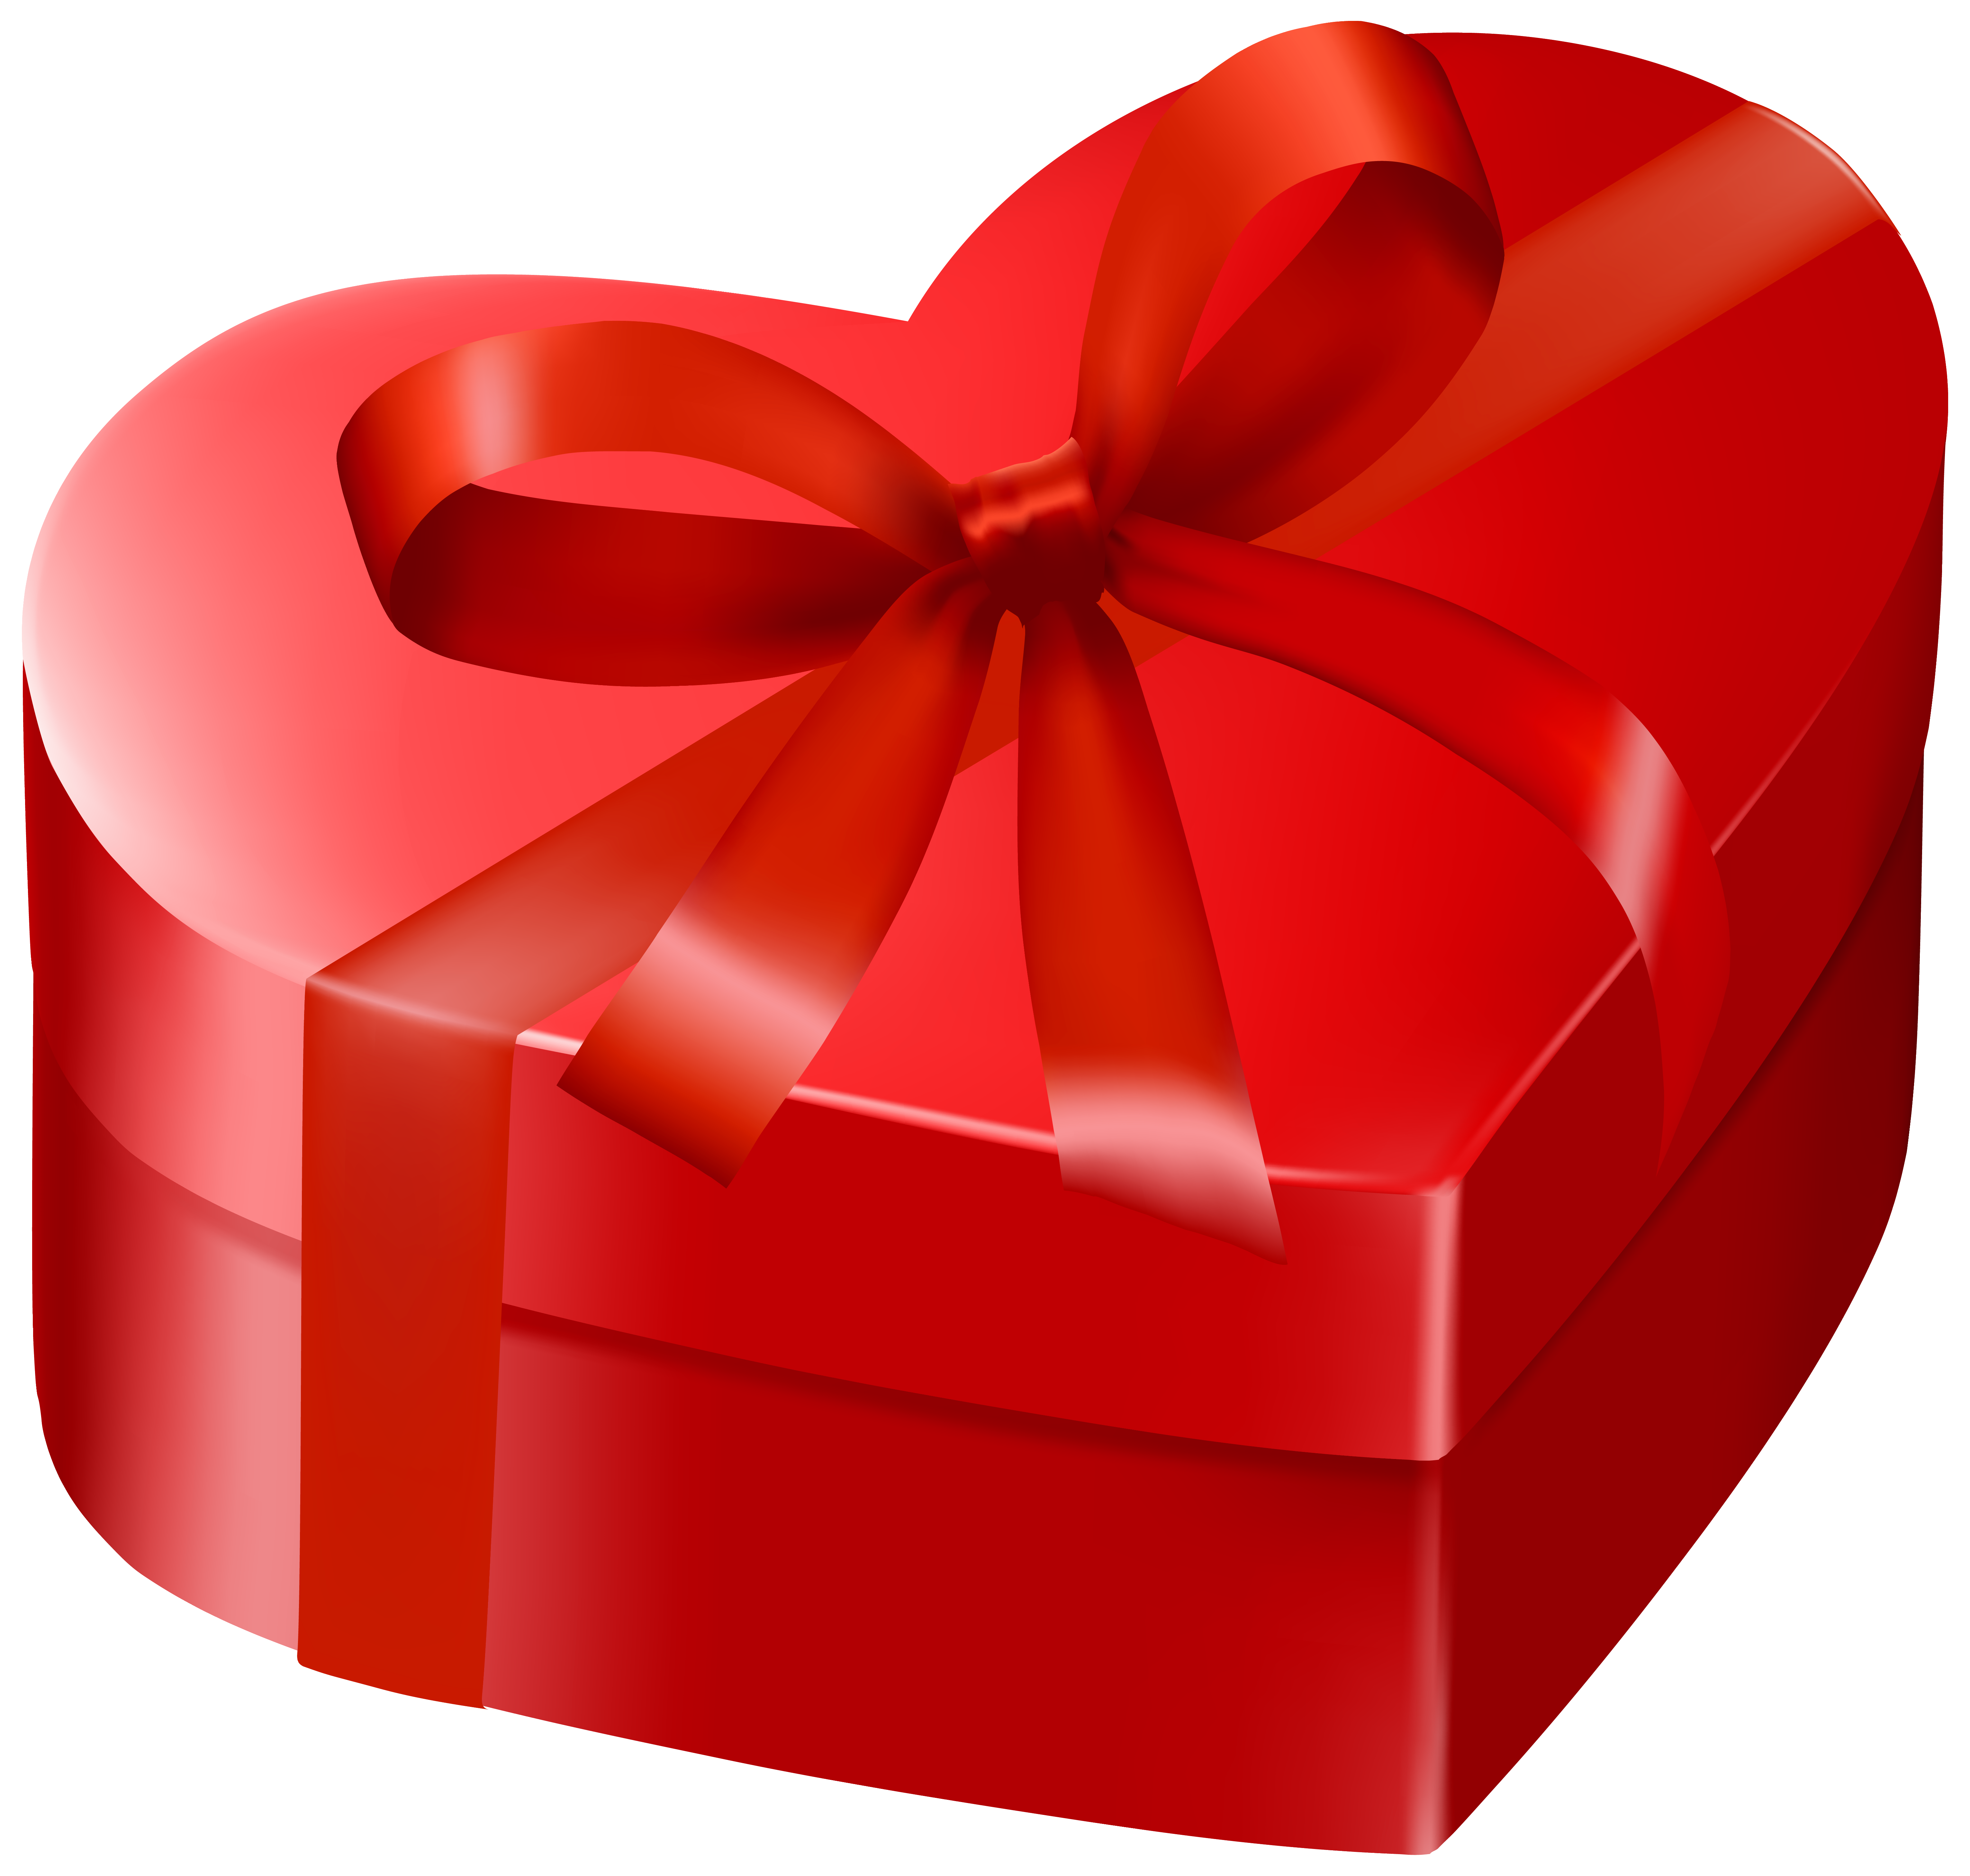 Gift clipart love gift. Red heart box png